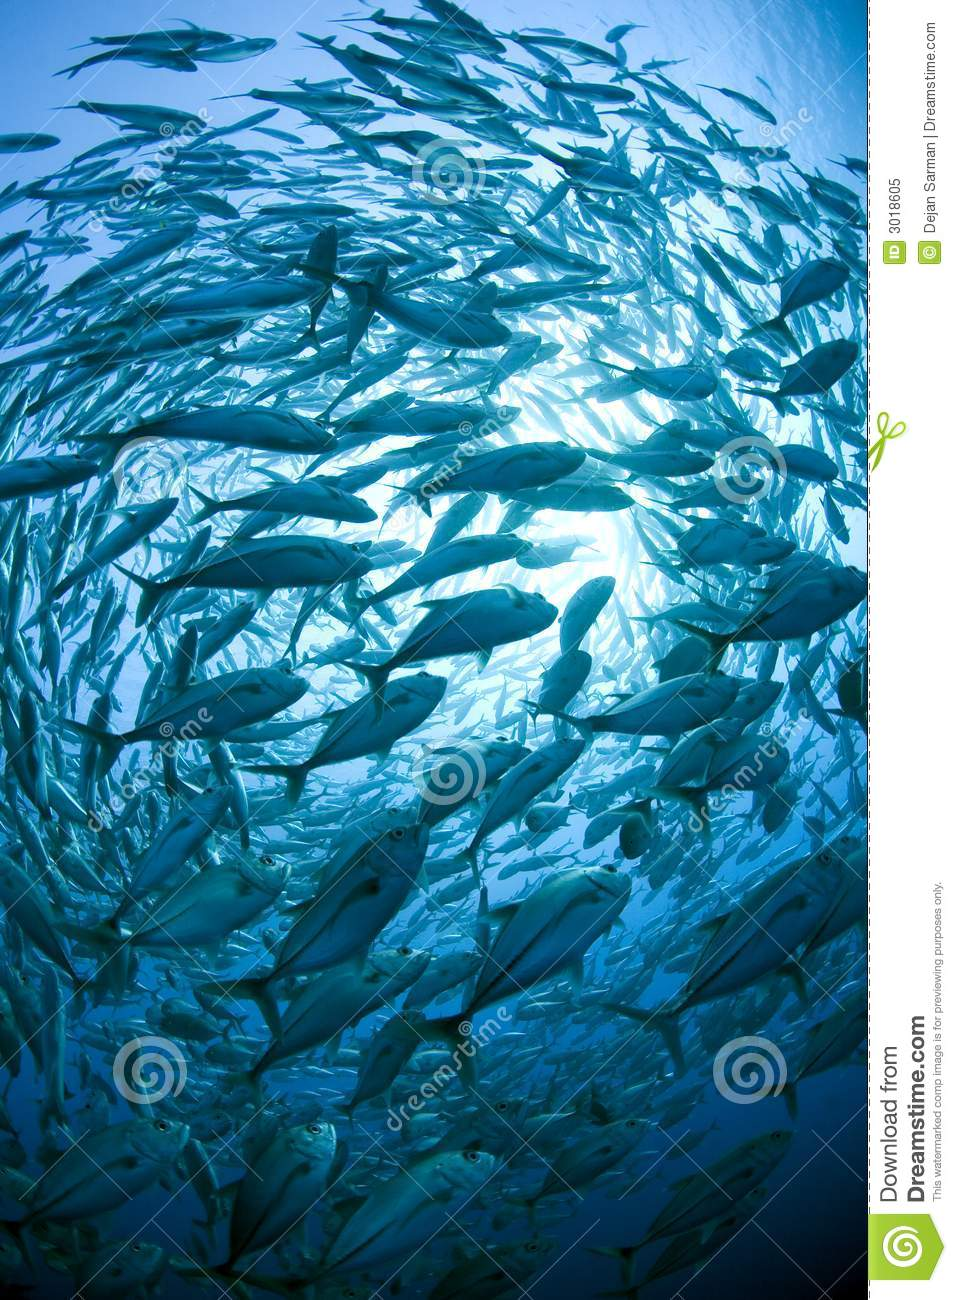 School of fish royalty free stock photo image 3018605 for School of fish